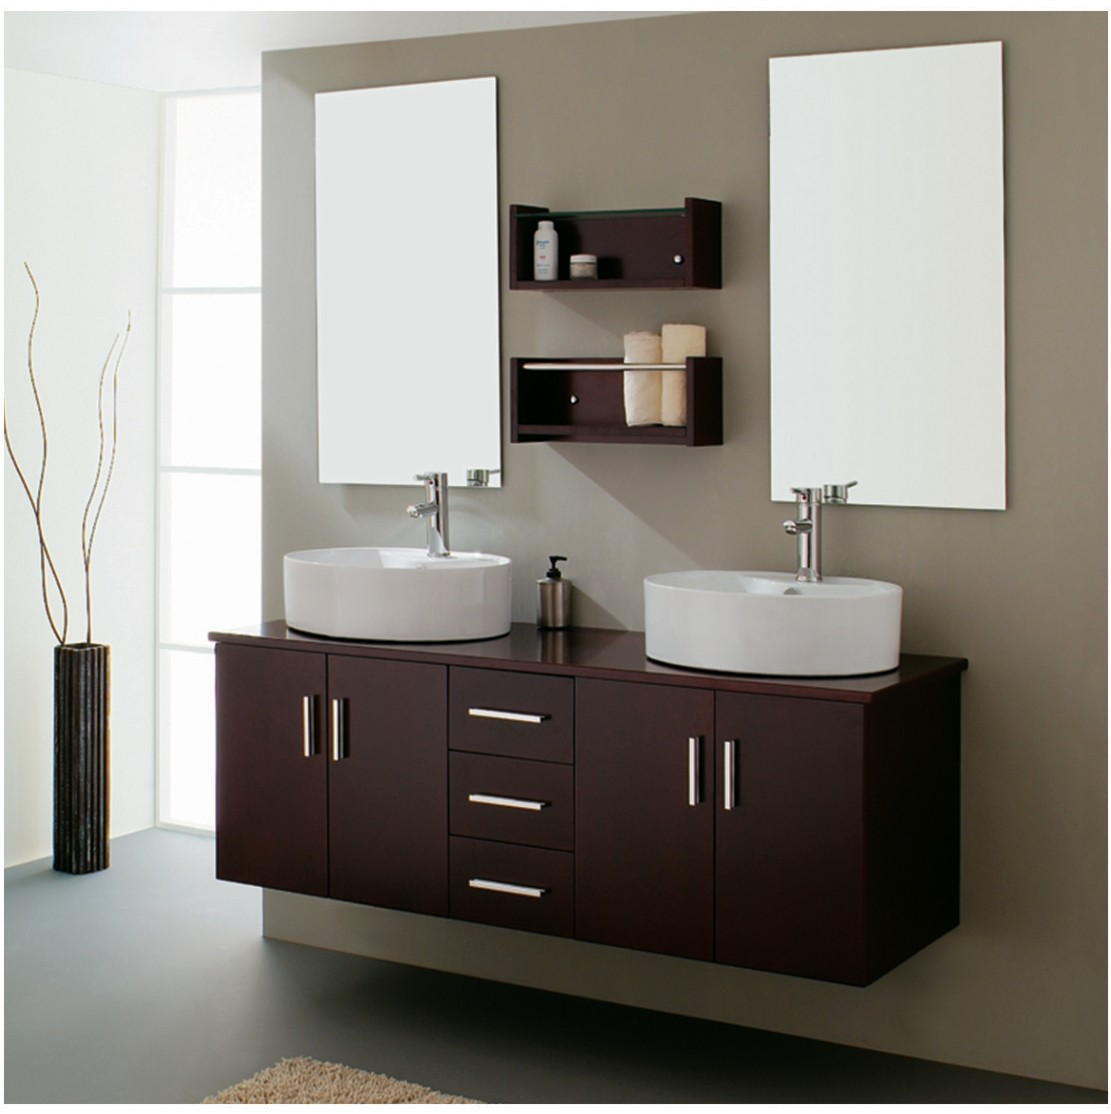 Small bathroom vanity with sink ideas small room for Double vanity for small bathroom